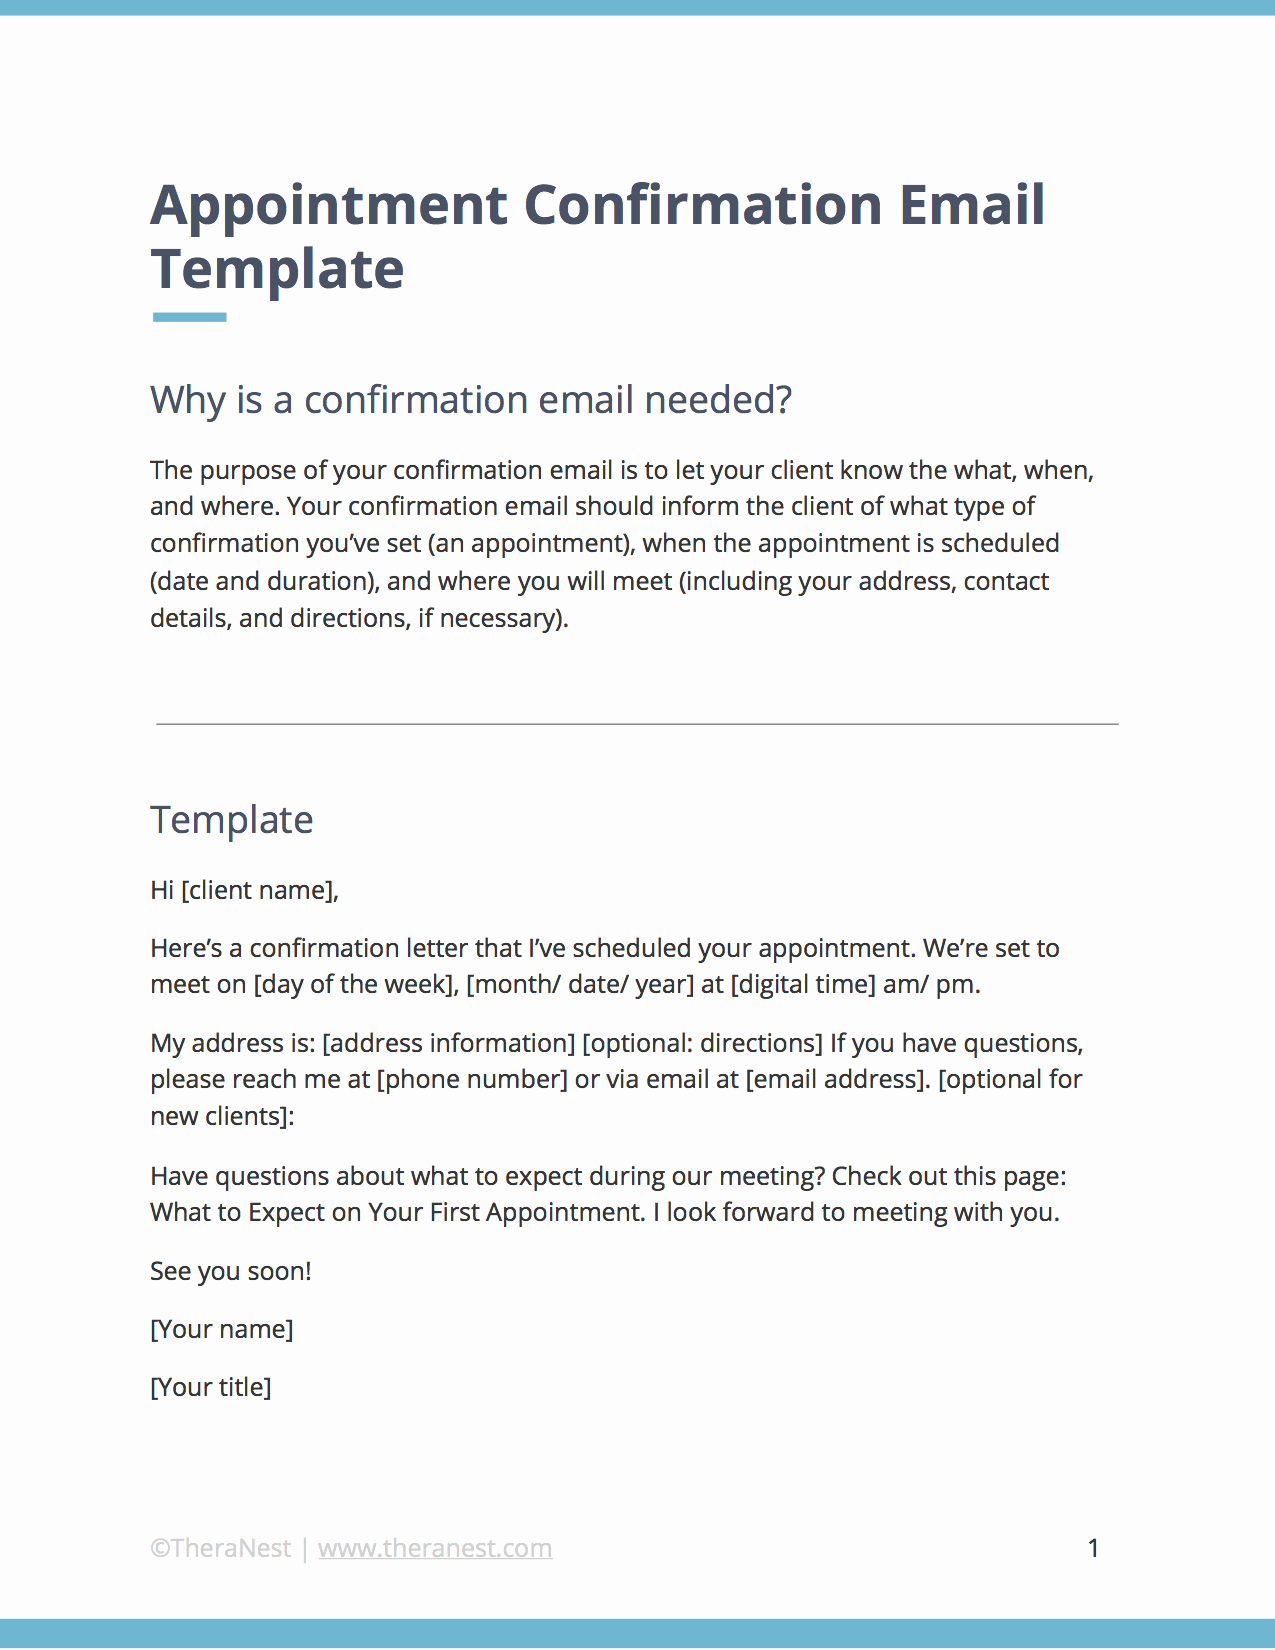 Appointment Confirmation Email Template Fresh Email Templates for Municating with Your therapy